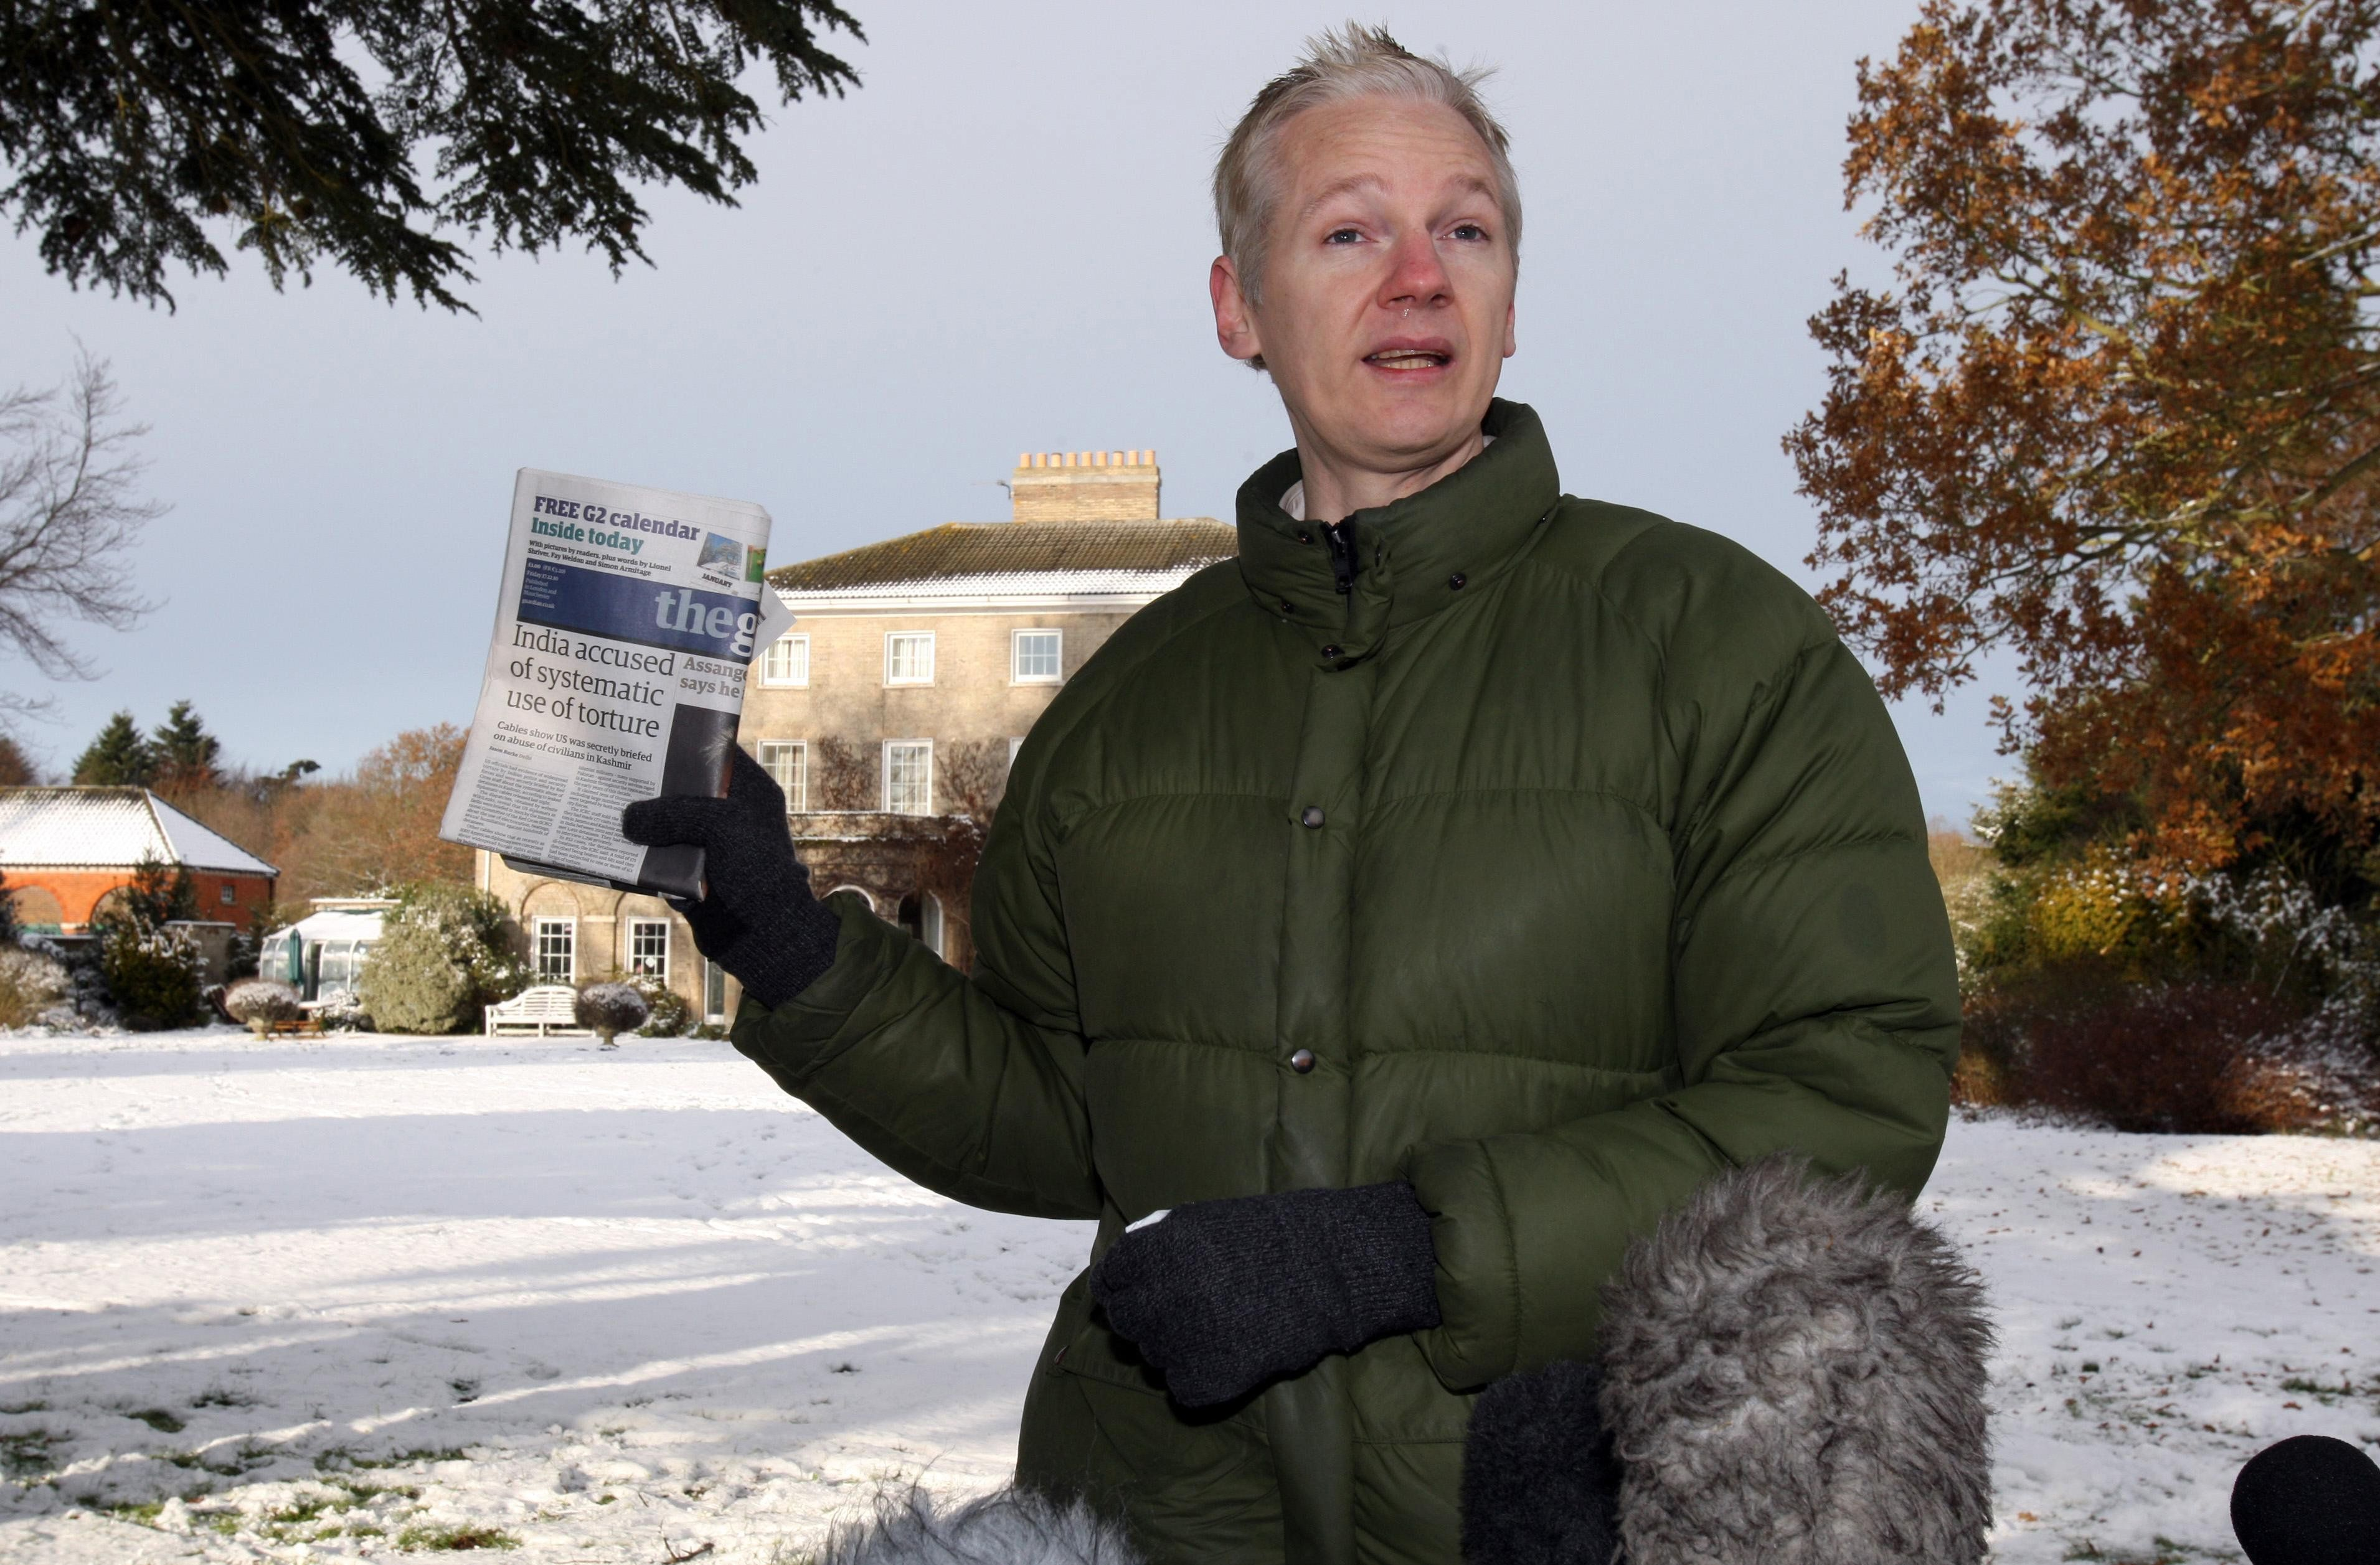 From Pamela Anderson's Vegan Meals To 'Embassy Cat', Here Are The Strangest Moments In The Assange